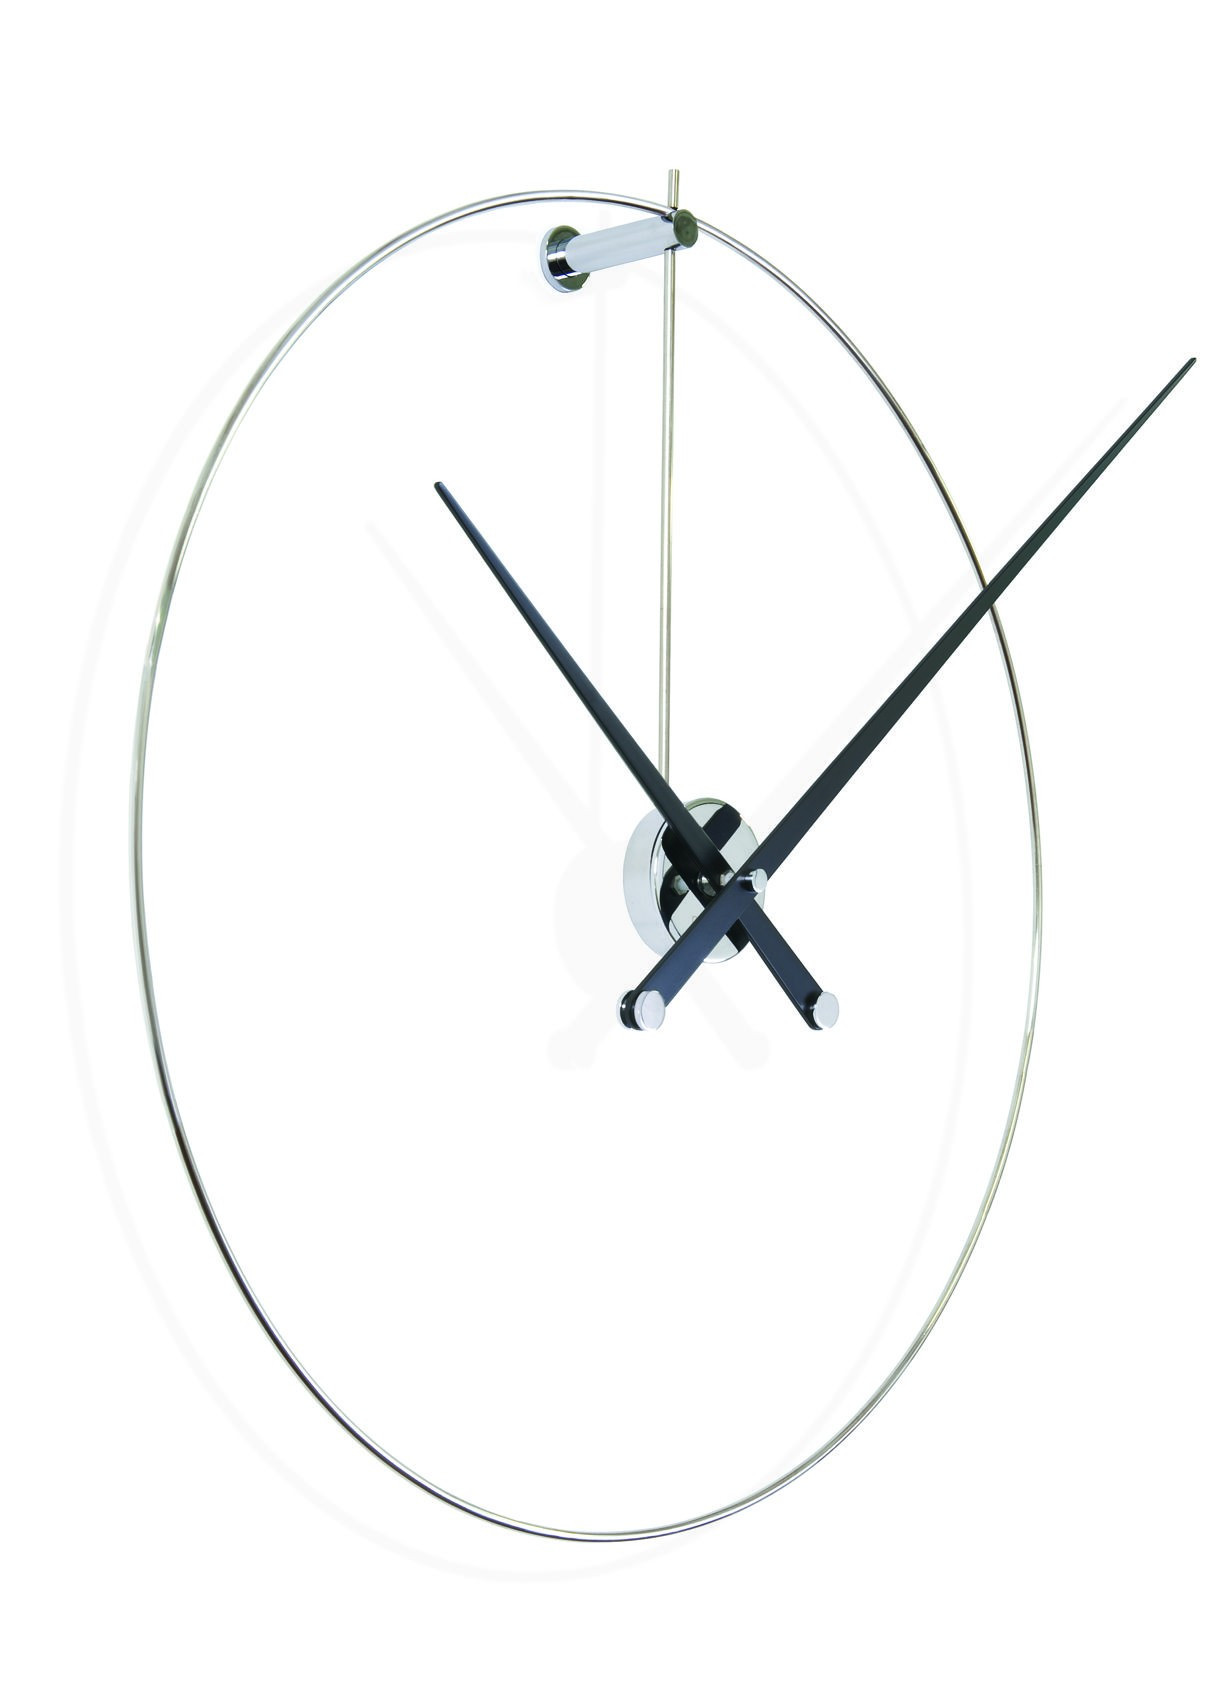 Relojes De Pared Modernos Decoracion Lujo New anda Modern Wall Clock Of 45  Lujo Relojes De Pared Modernos Decoracion